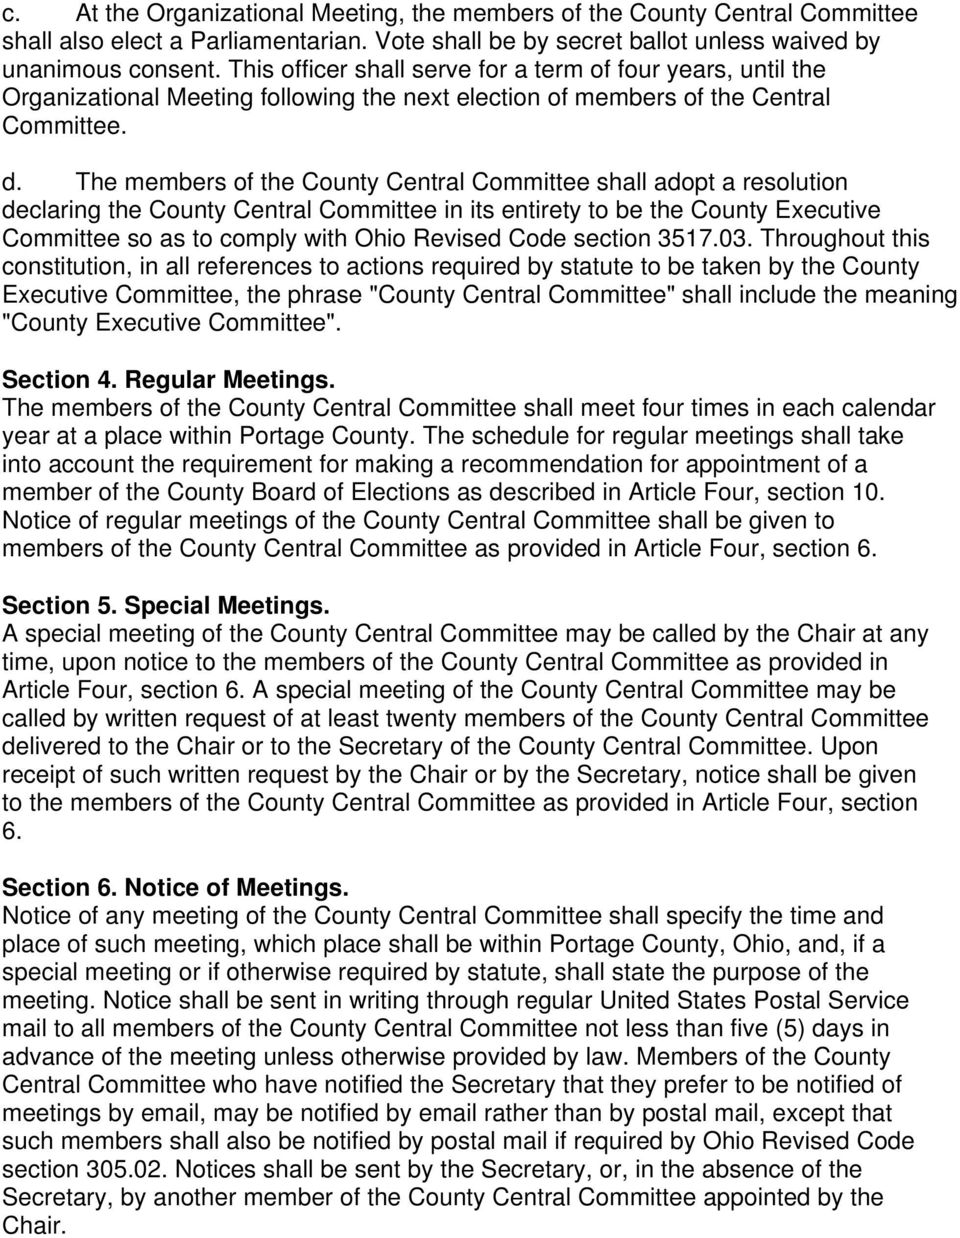 The members of the County Central Committee shall adopt a resolution declaring the County Central Committee in its entirety to be the County Executive Committee so as to comply with Ohio Revised Code